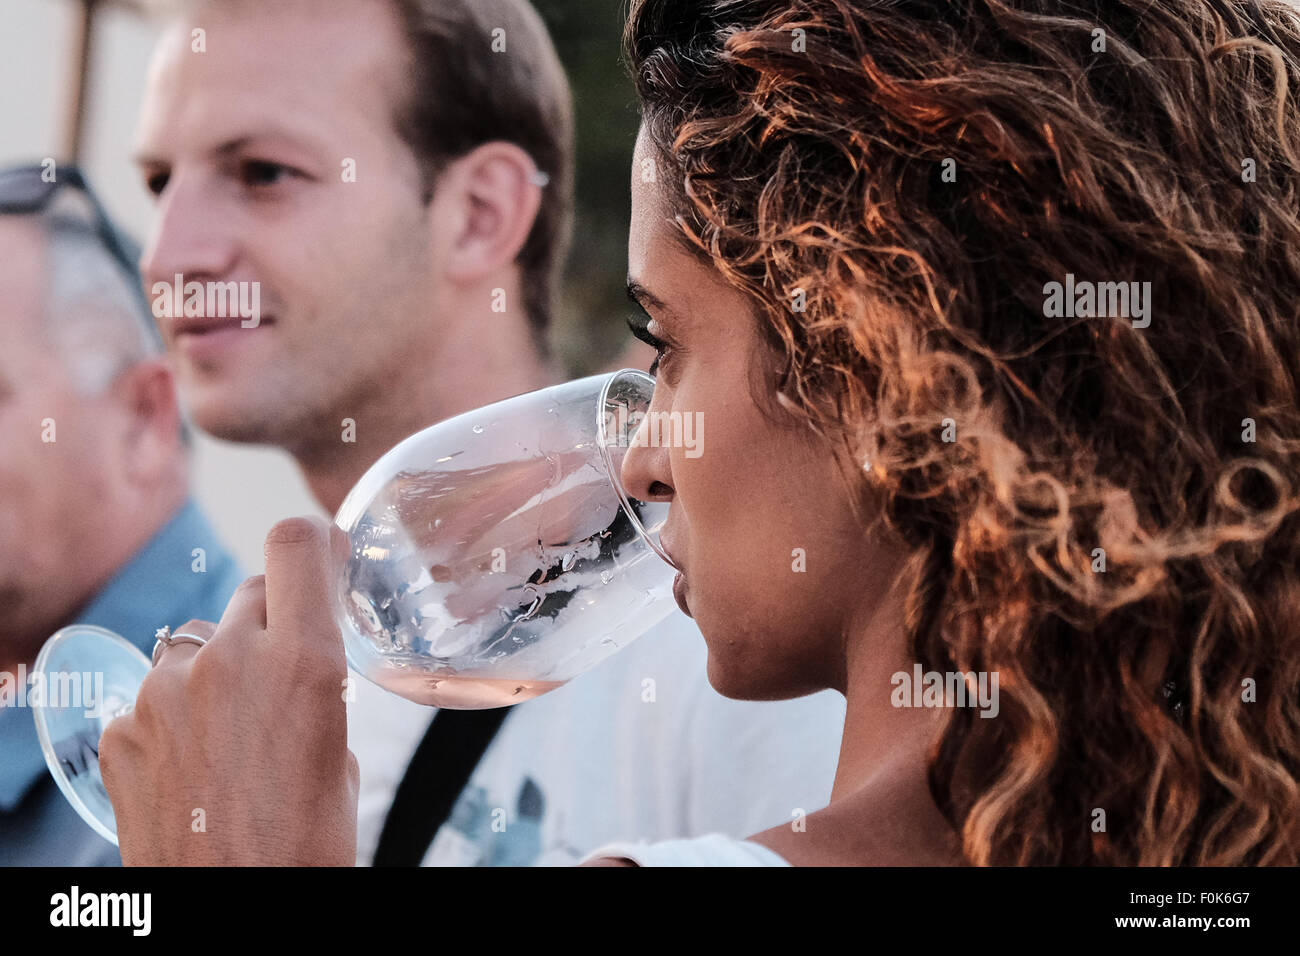 Jerusalem, Israel. 17th August, 2015. The Israel Museum hosts the annual Jerusalem Wine Festival at the Billy Rose Stock Photo